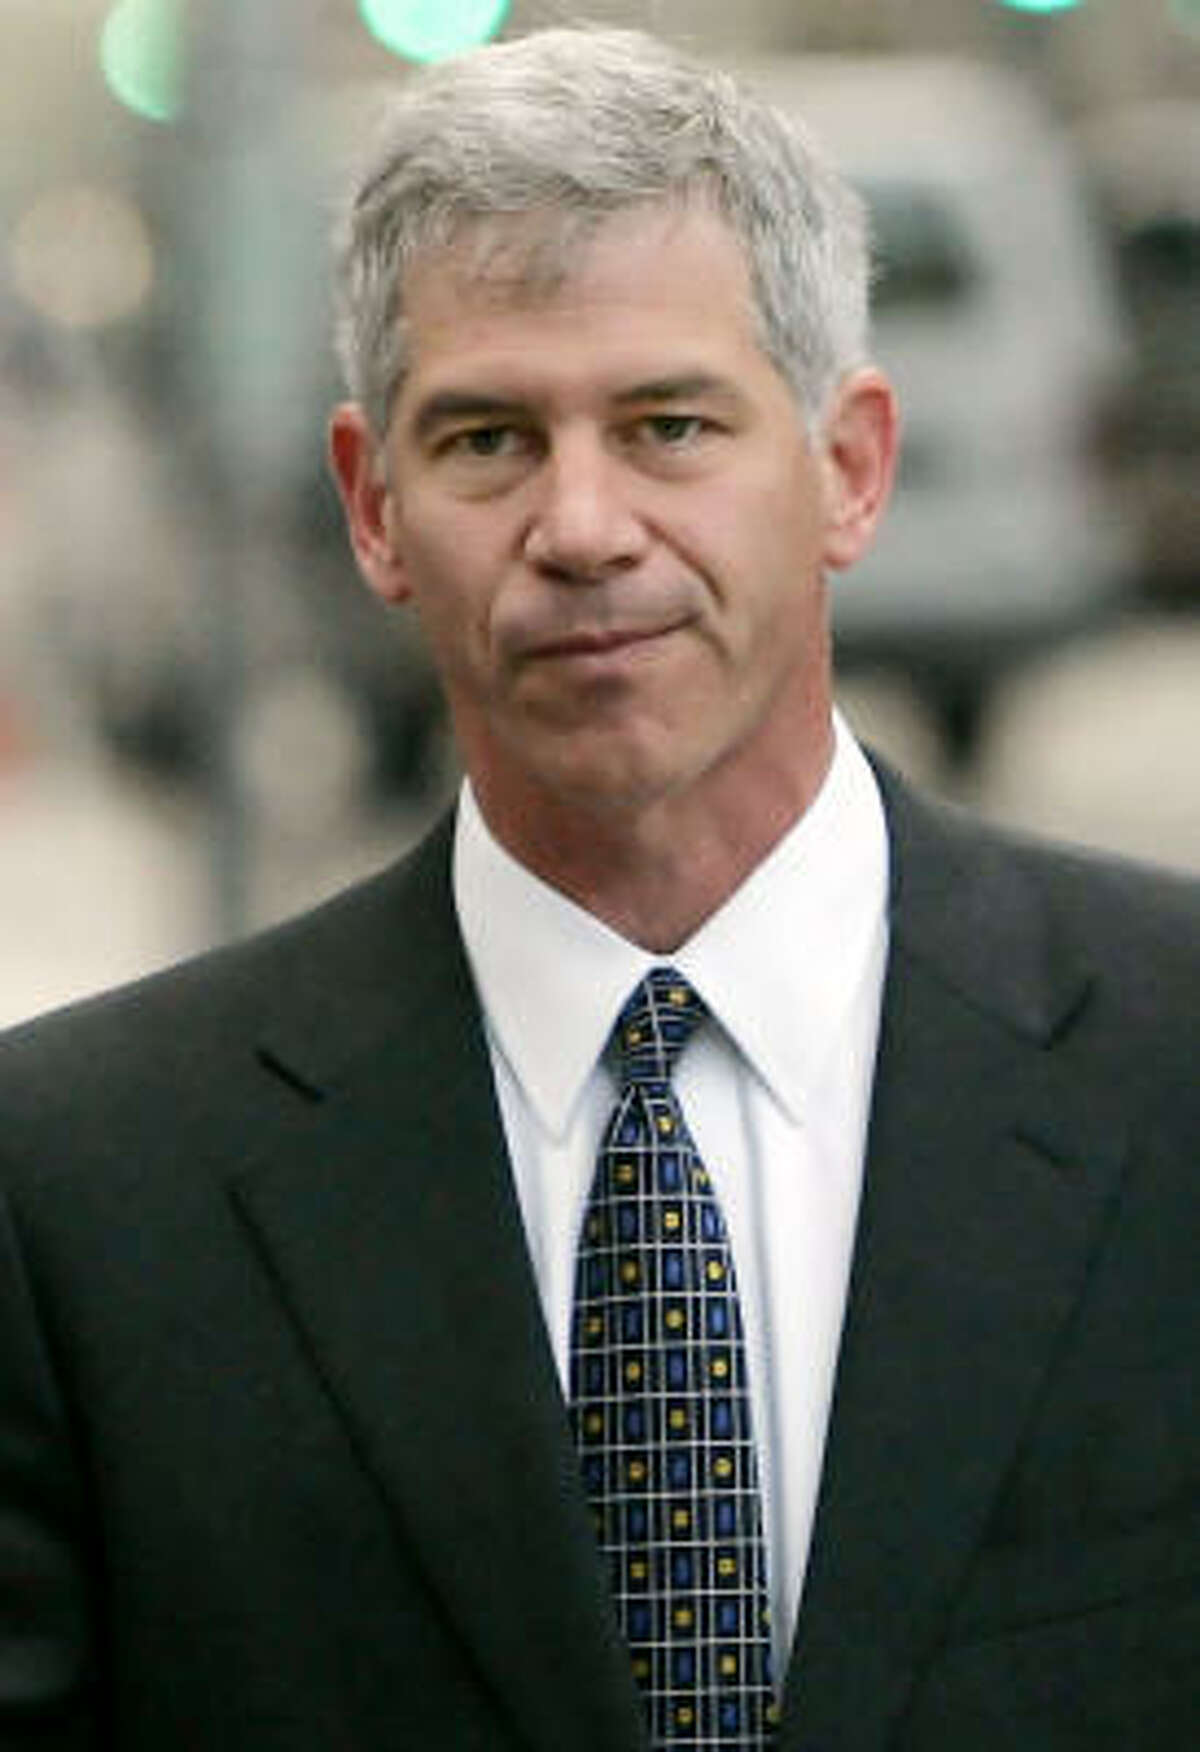 Defense filings for leniency say former executive Andrew Fastow has volunteered over the past few years.